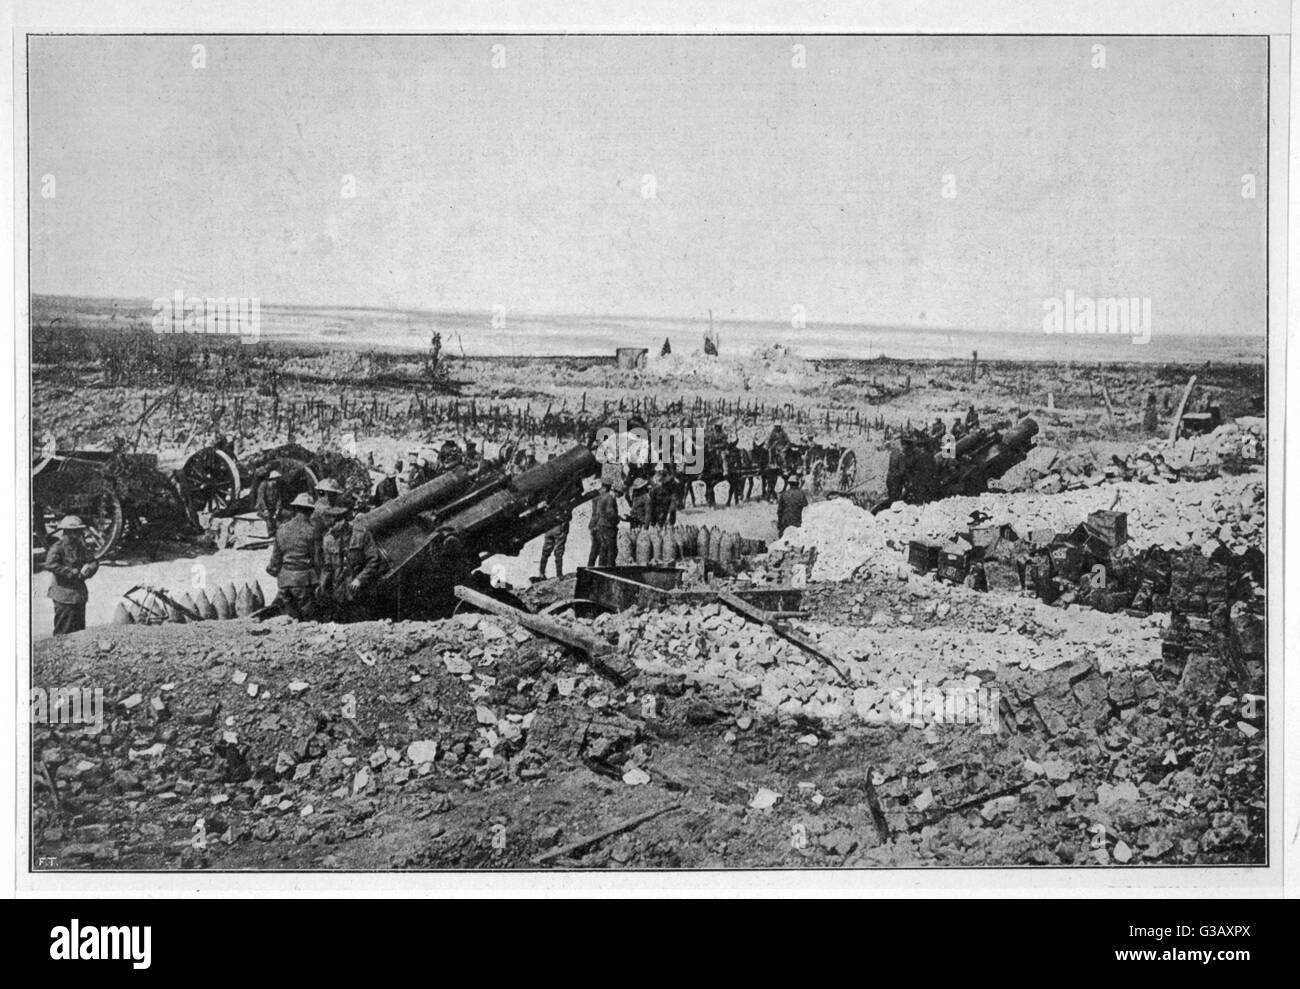 British heavy field artillery  being moved into position on  the Western Front        Date: 1918 - Stock Image